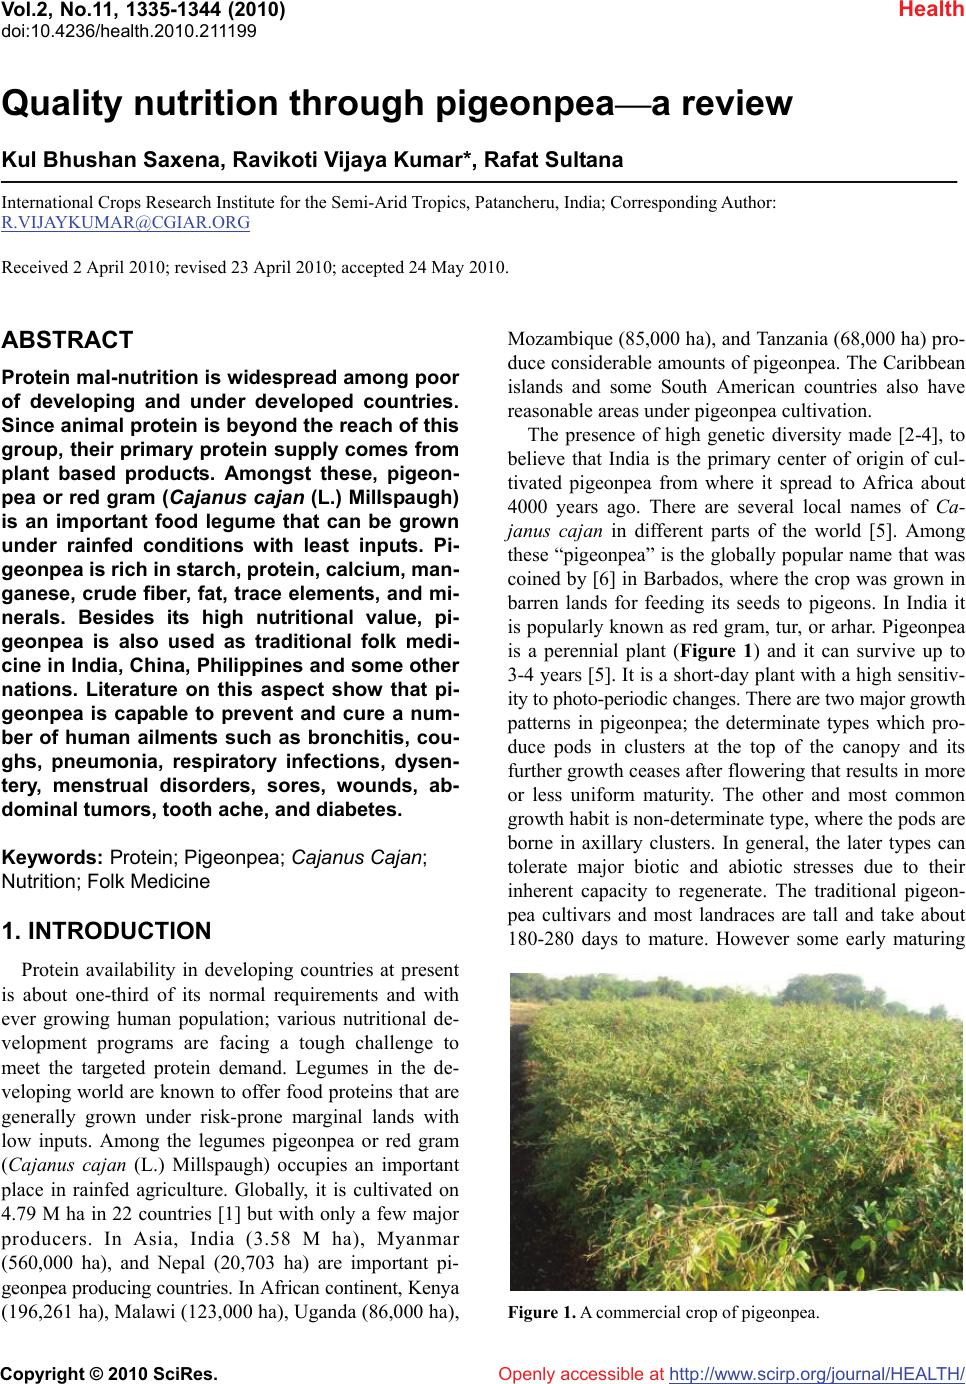 pigeonpea thesis Pigeonpea at different cropping geometry and intercropping systems sujatha  h t and  60 cm planting geometry, direct sown pigeonpea at 120 cm x 60 cm  and 90 cm x 30 cm planting geometries  thesis, univ agric.